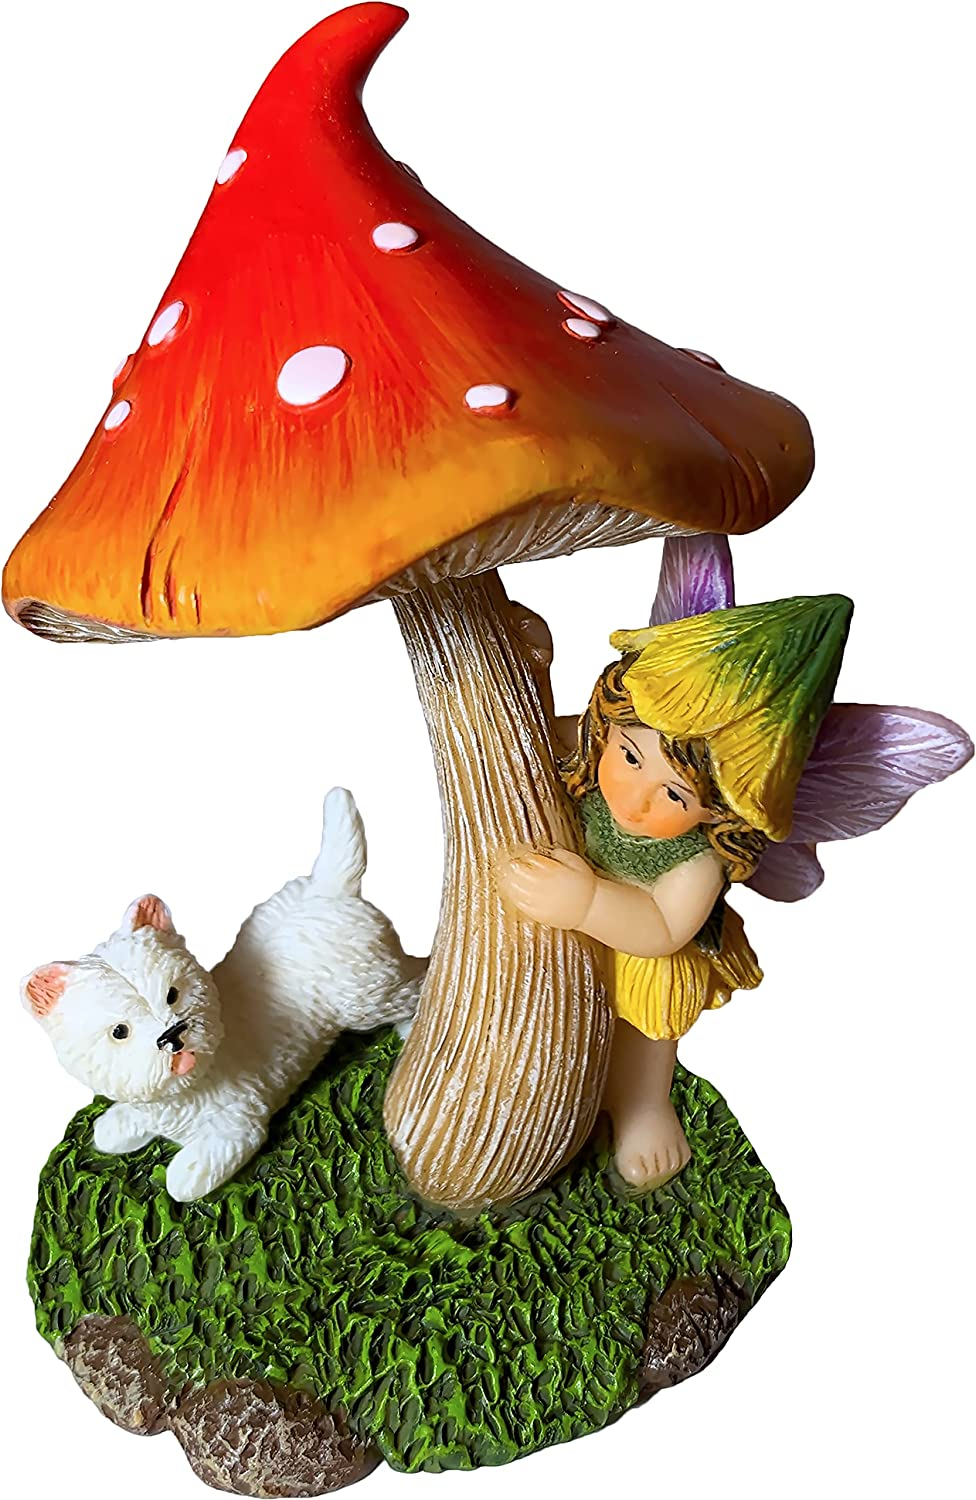 Fairy Garden Miniature Figurines and Accessories - Hide and Seek Statue Kit